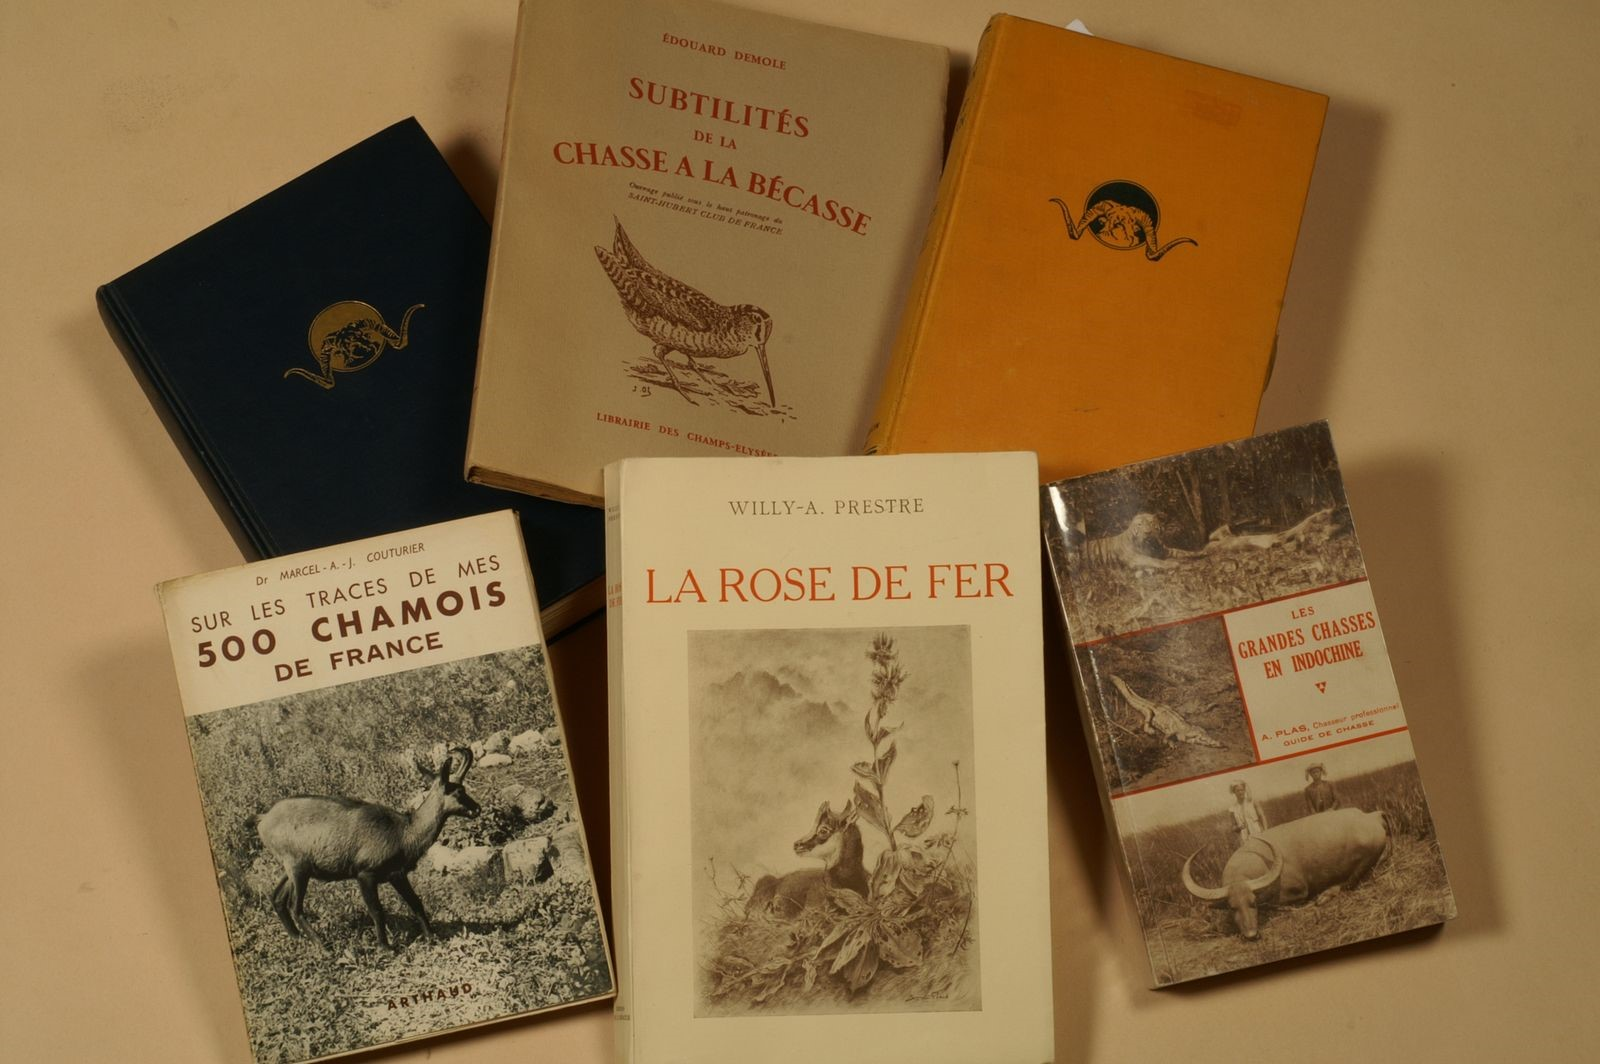 Librairie & DVD chasse